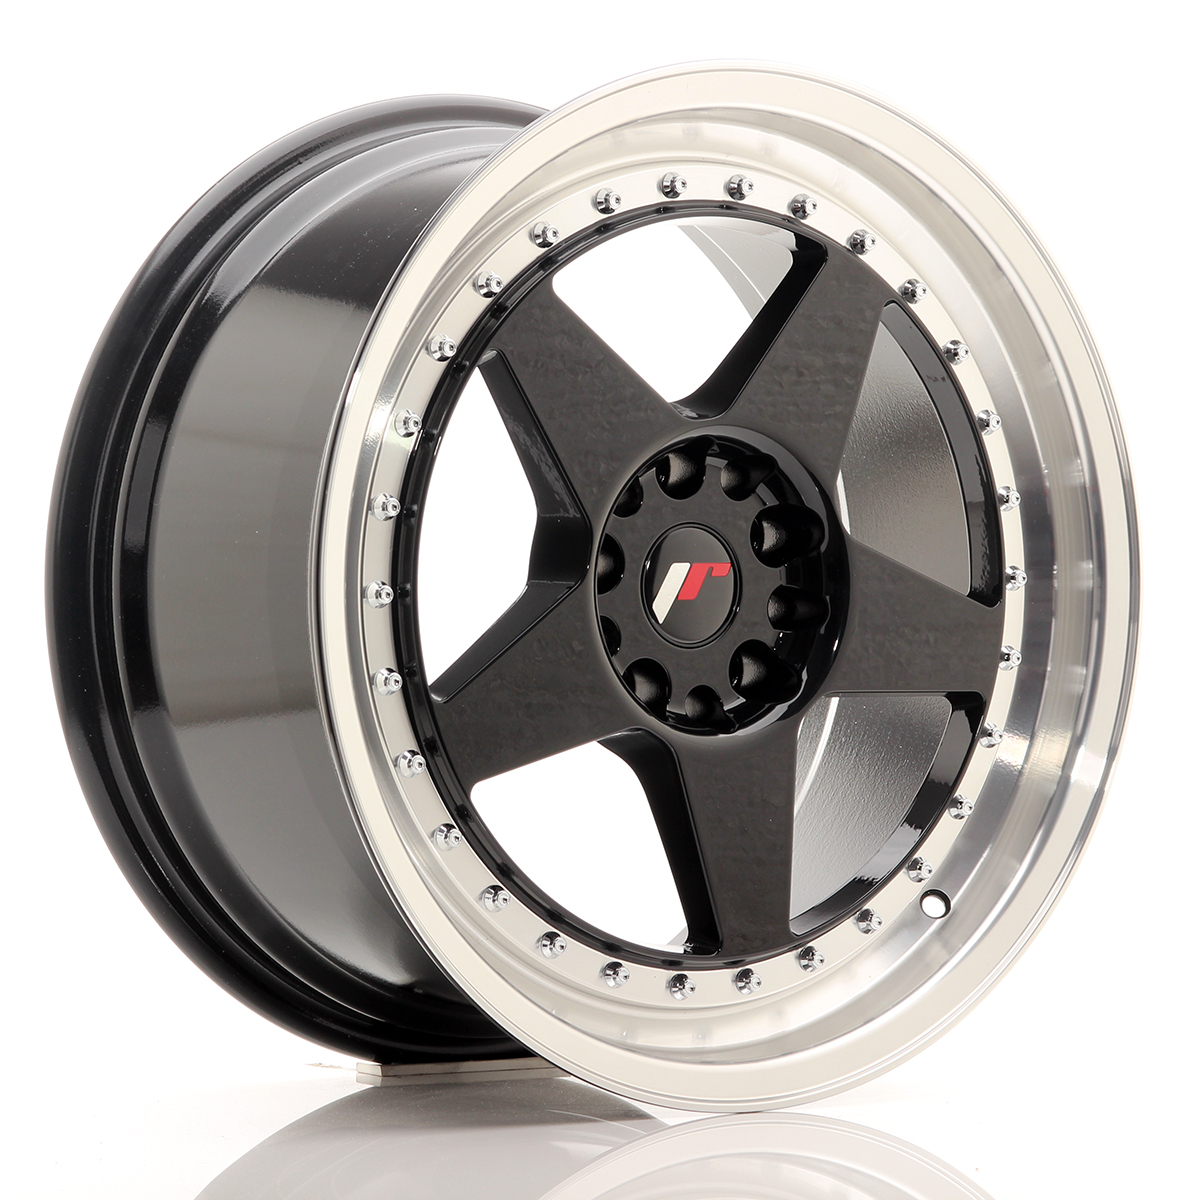 Japan Racing JR Wheels JR6 18x8.5 ET22 5x114.3 5x120 Black